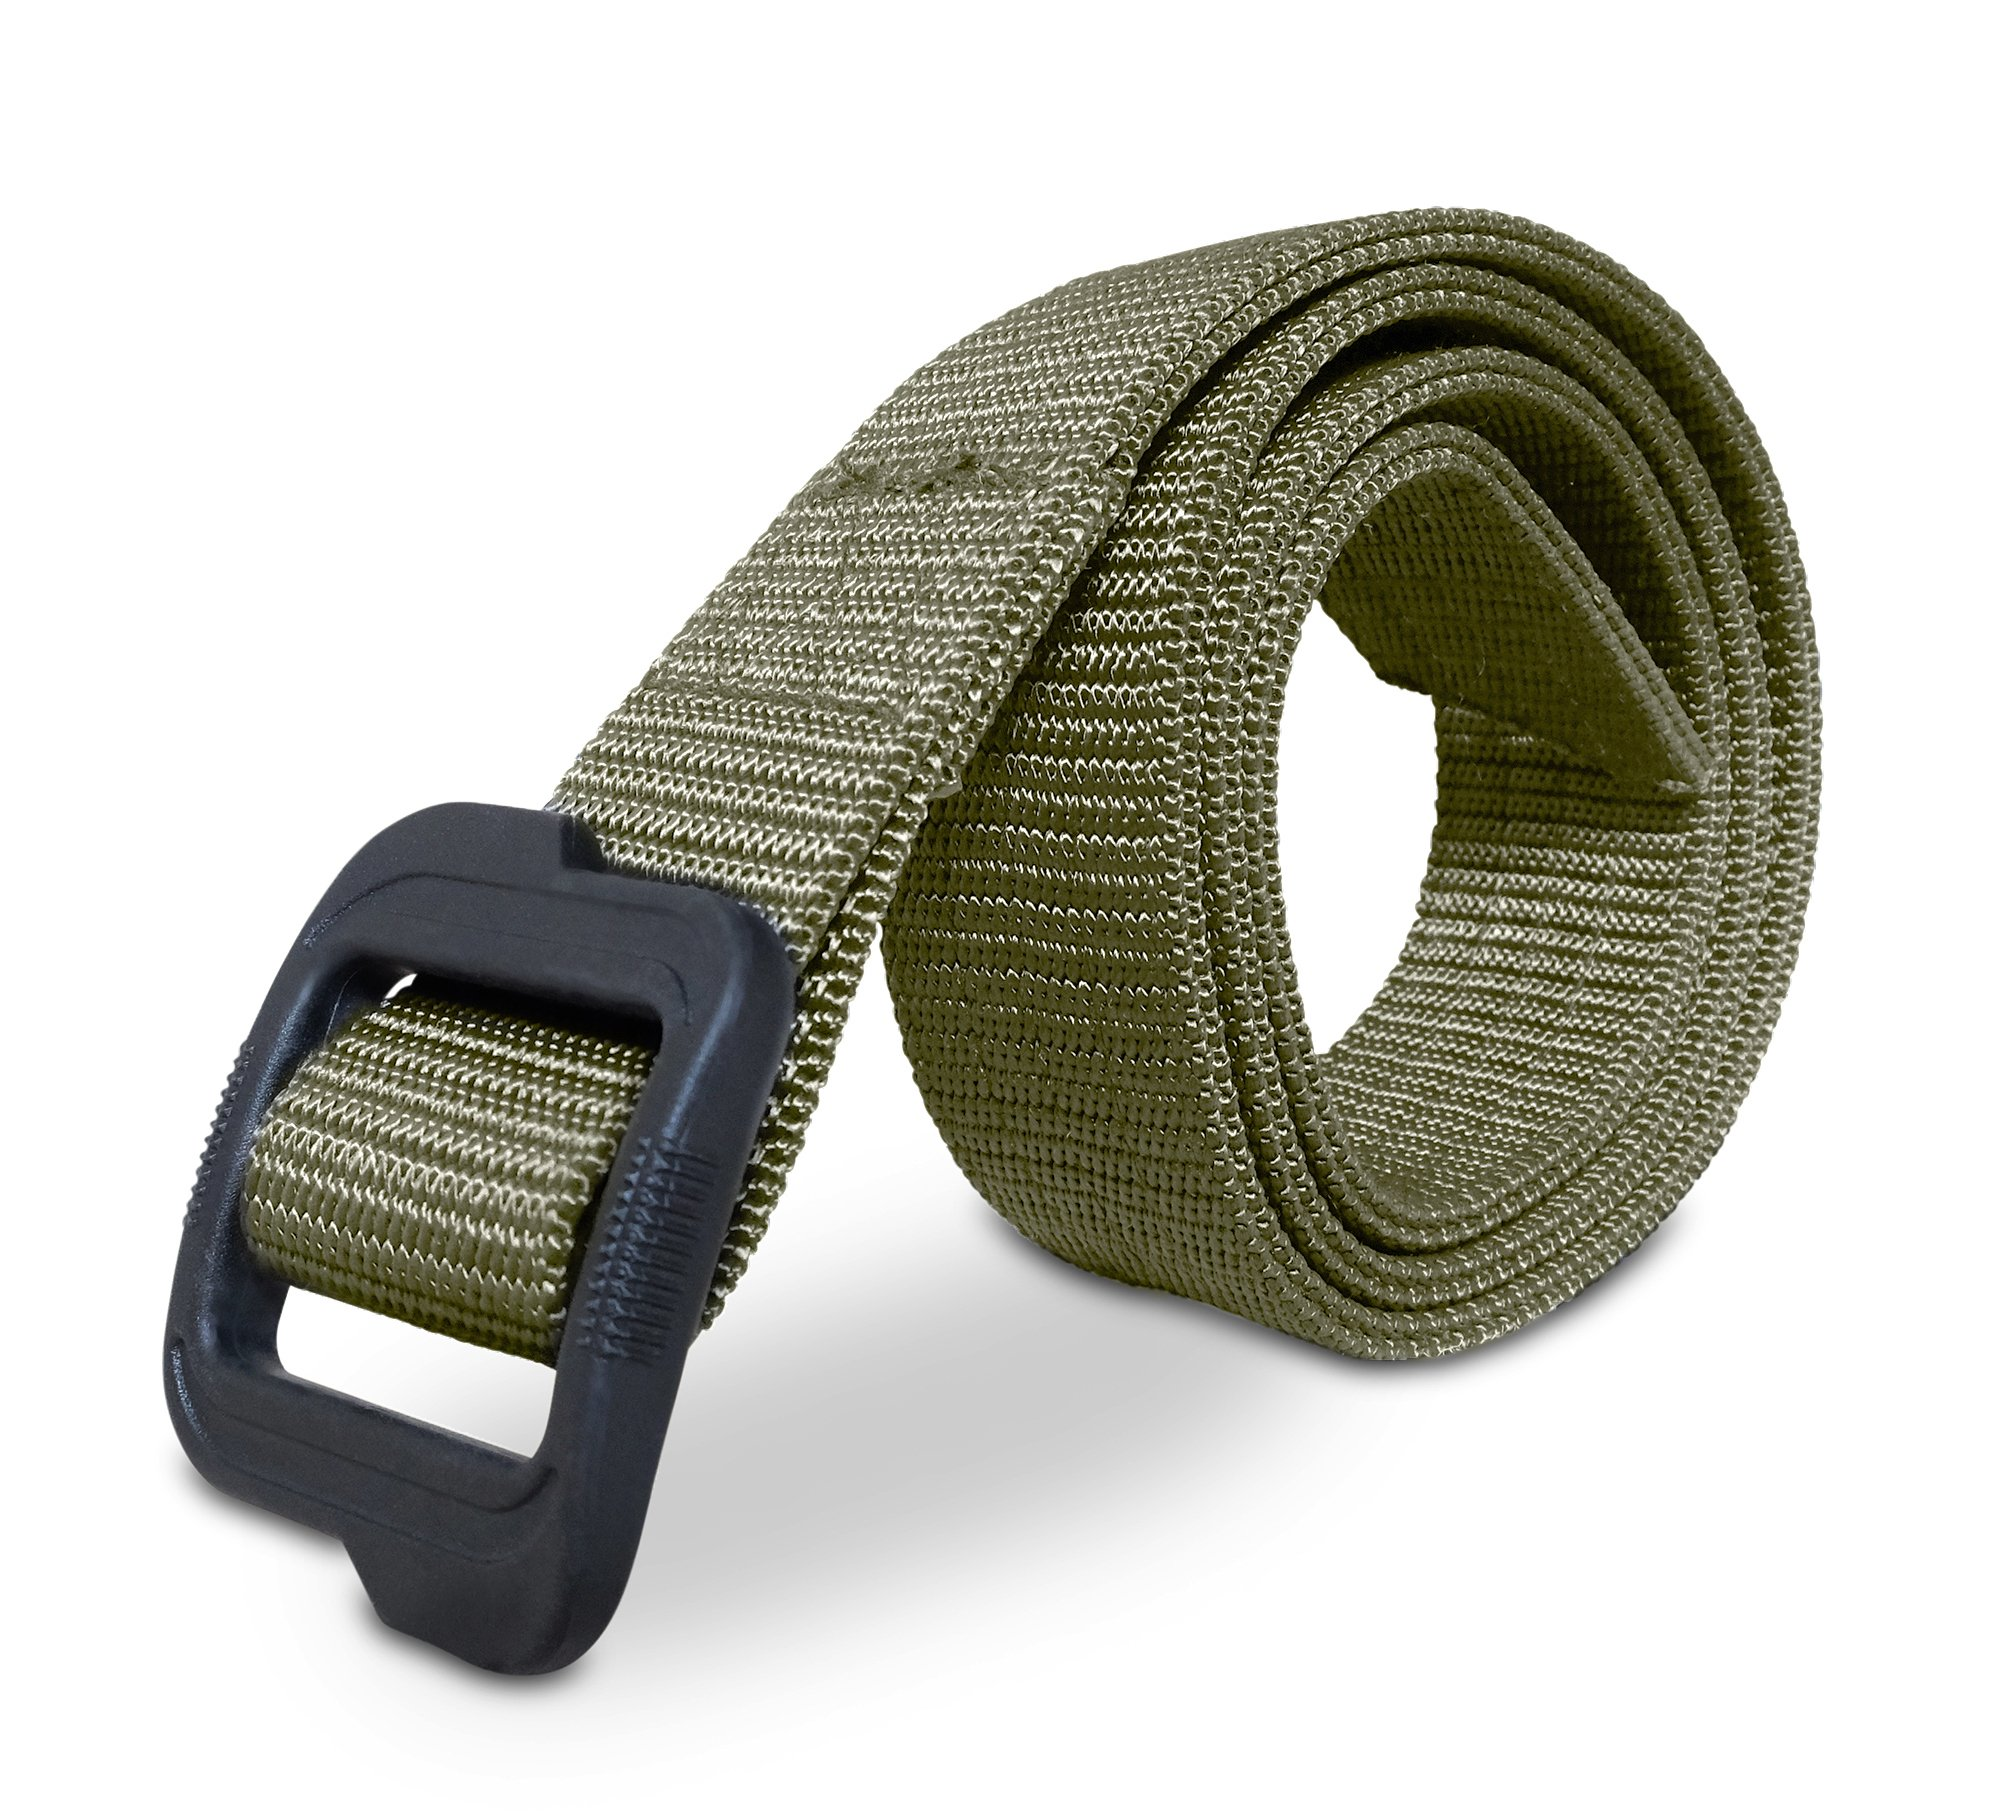 MISSION ELITE Heavy Duty EDC Tactical Belt - Two-Layer Reinforced Nylon with No Metal - Stiffened for Concealed Carry EDC Holsters Pouches Security Military Wilderness